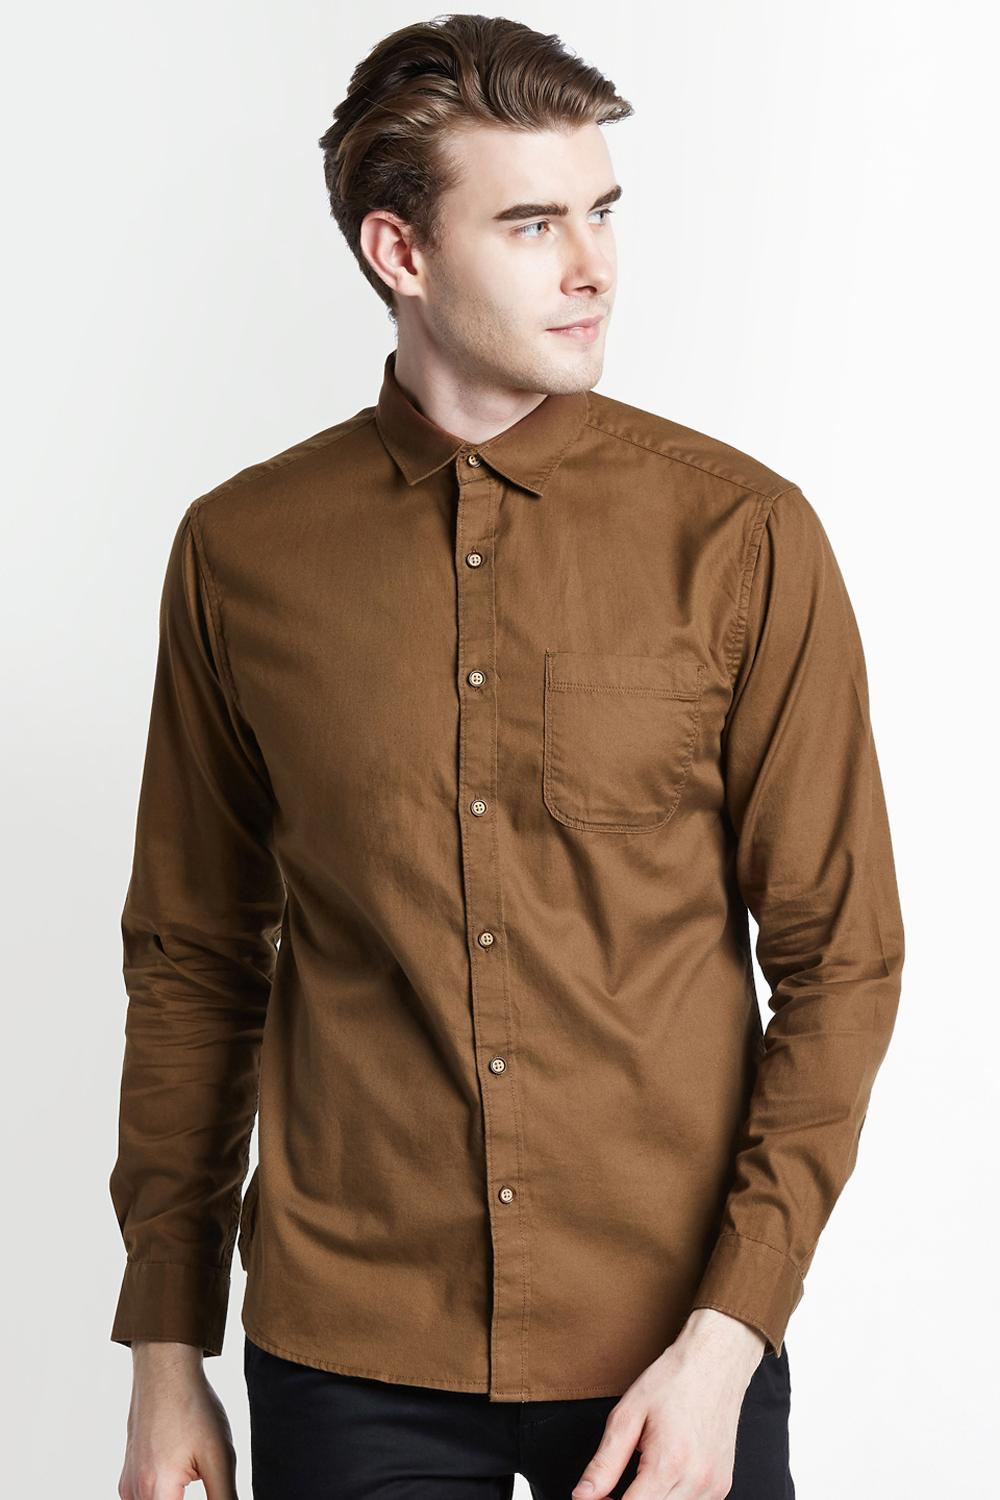 910c3e45bb96 Buy Mens Casual and Formal Shirts Online with Affordable Price in ...